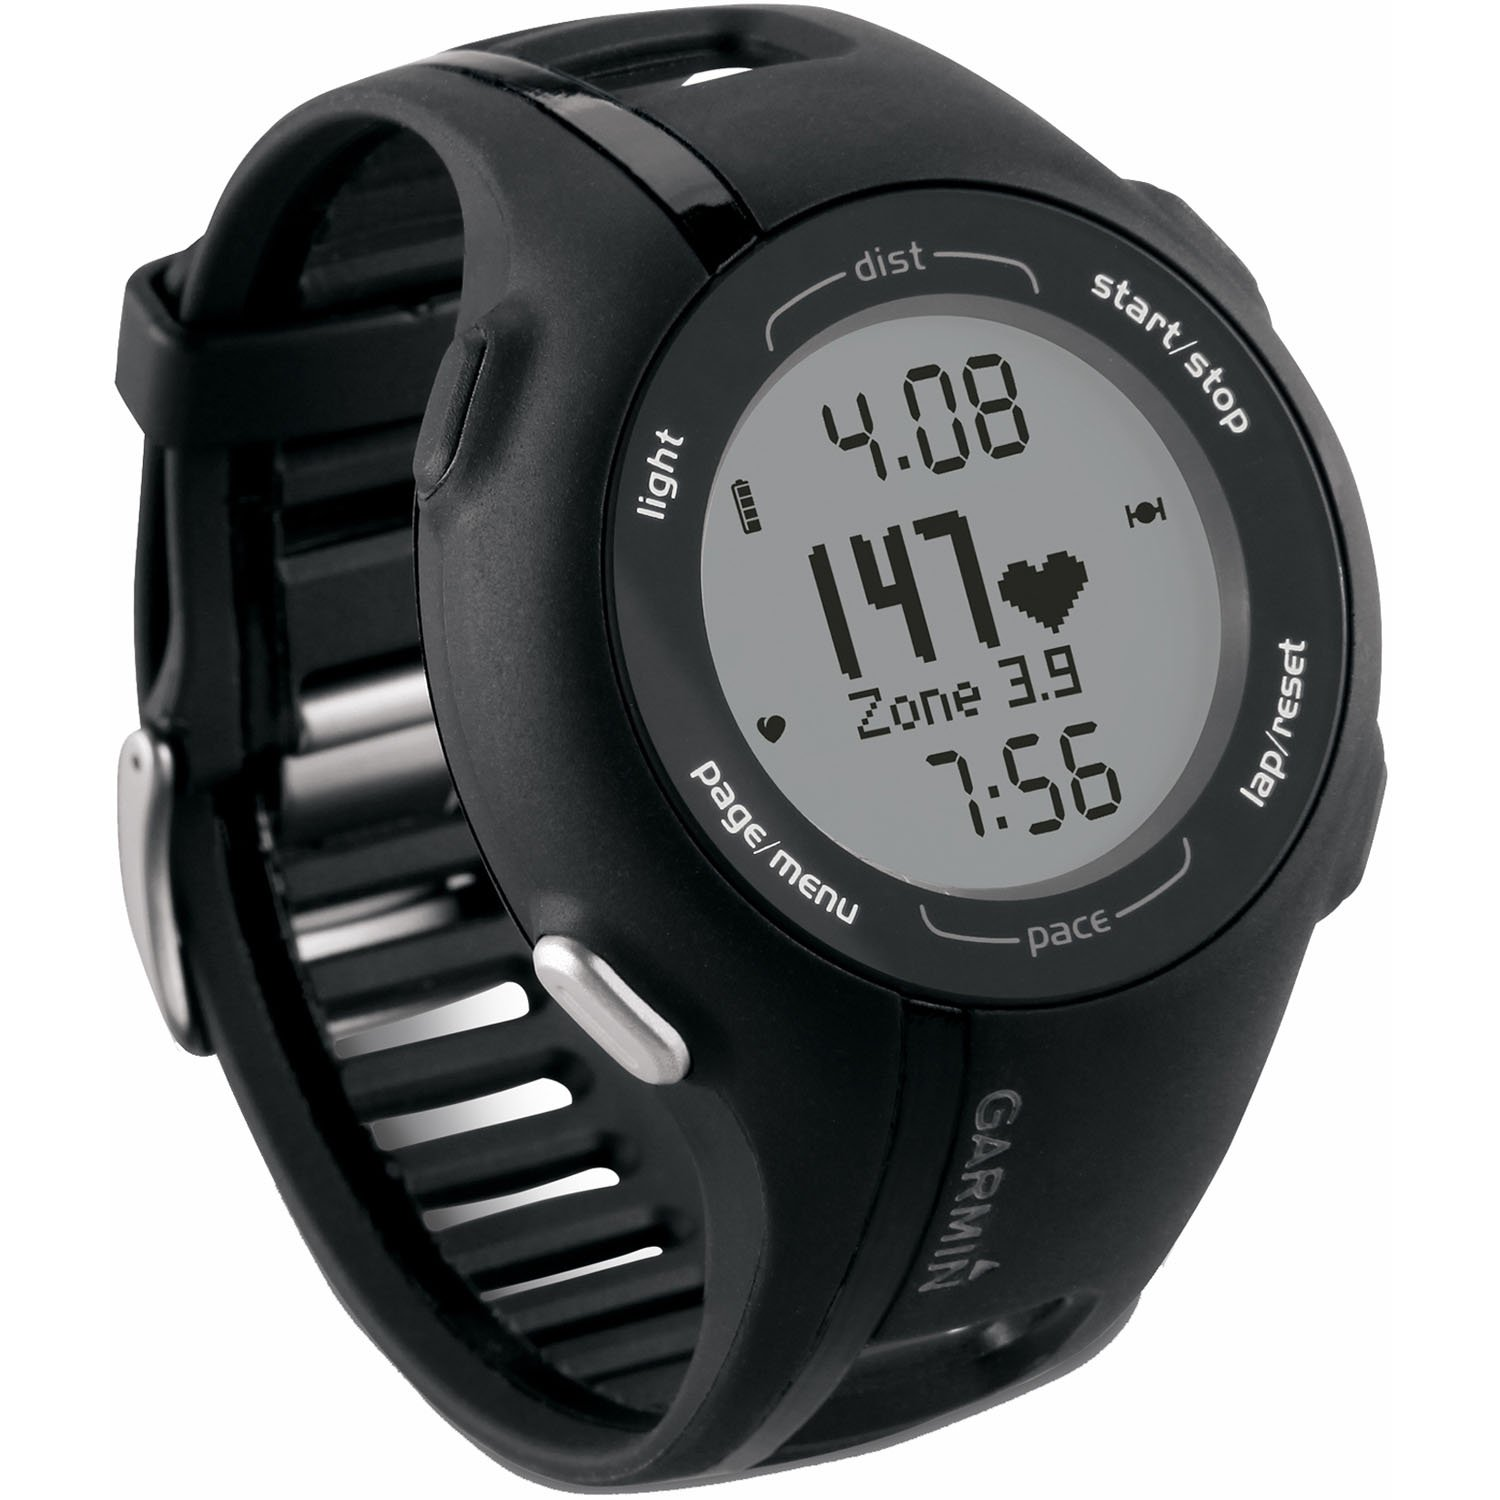 black sports from gps item swim computer run watch watches in yellow forerunner bicycle smartwatch garmin multisport triathlon